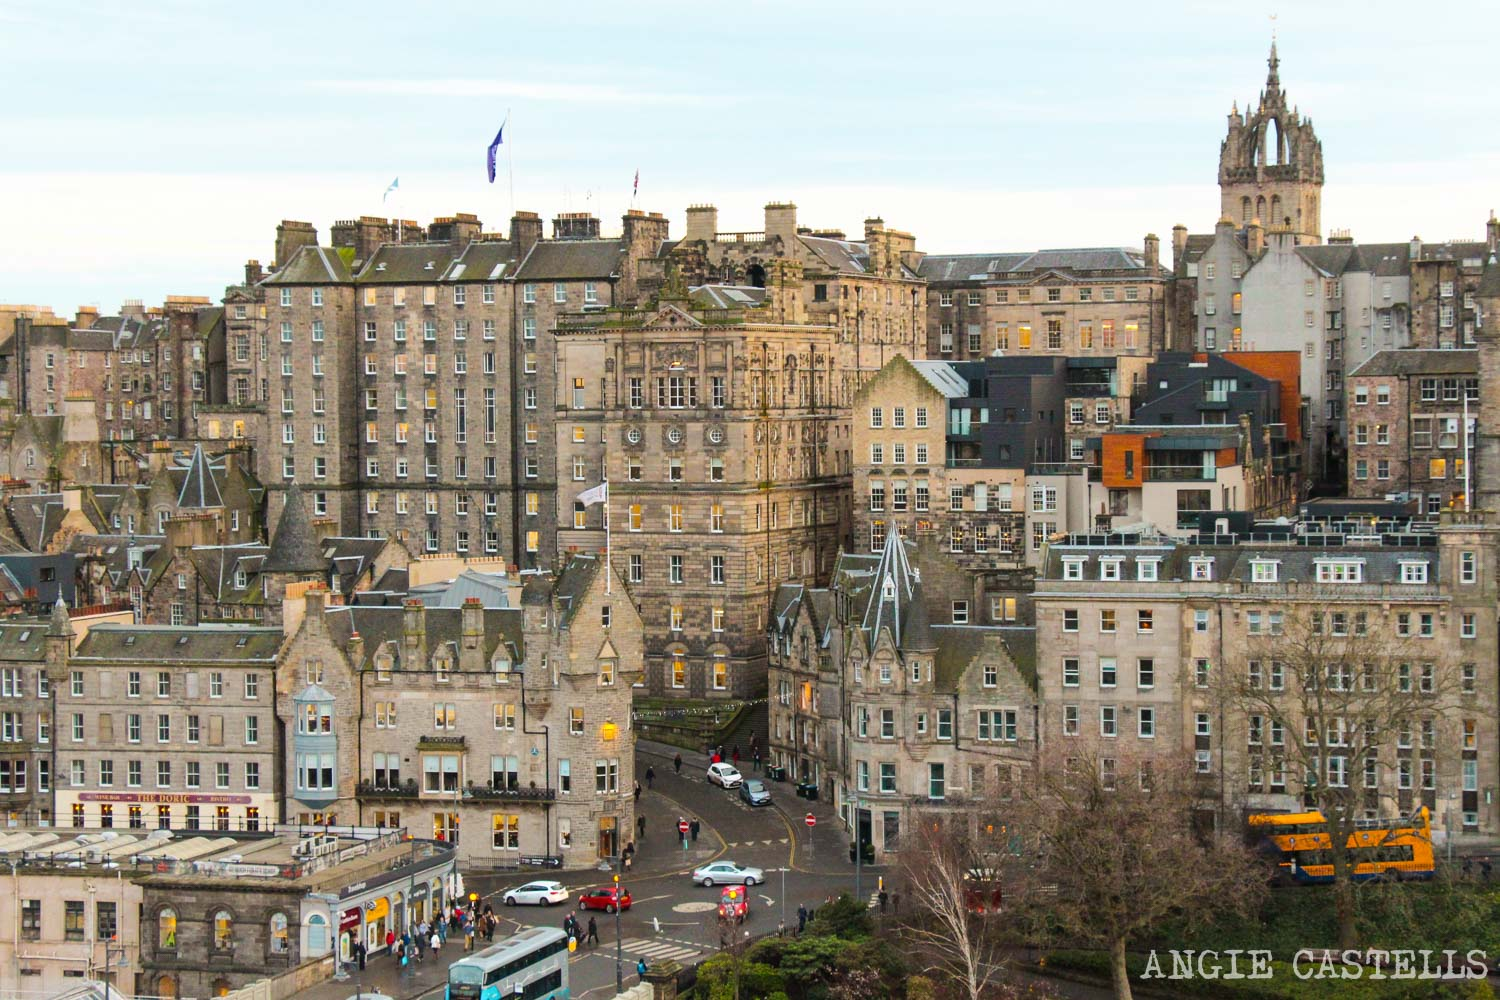 Los barrios de Edimburgo - La Old Town